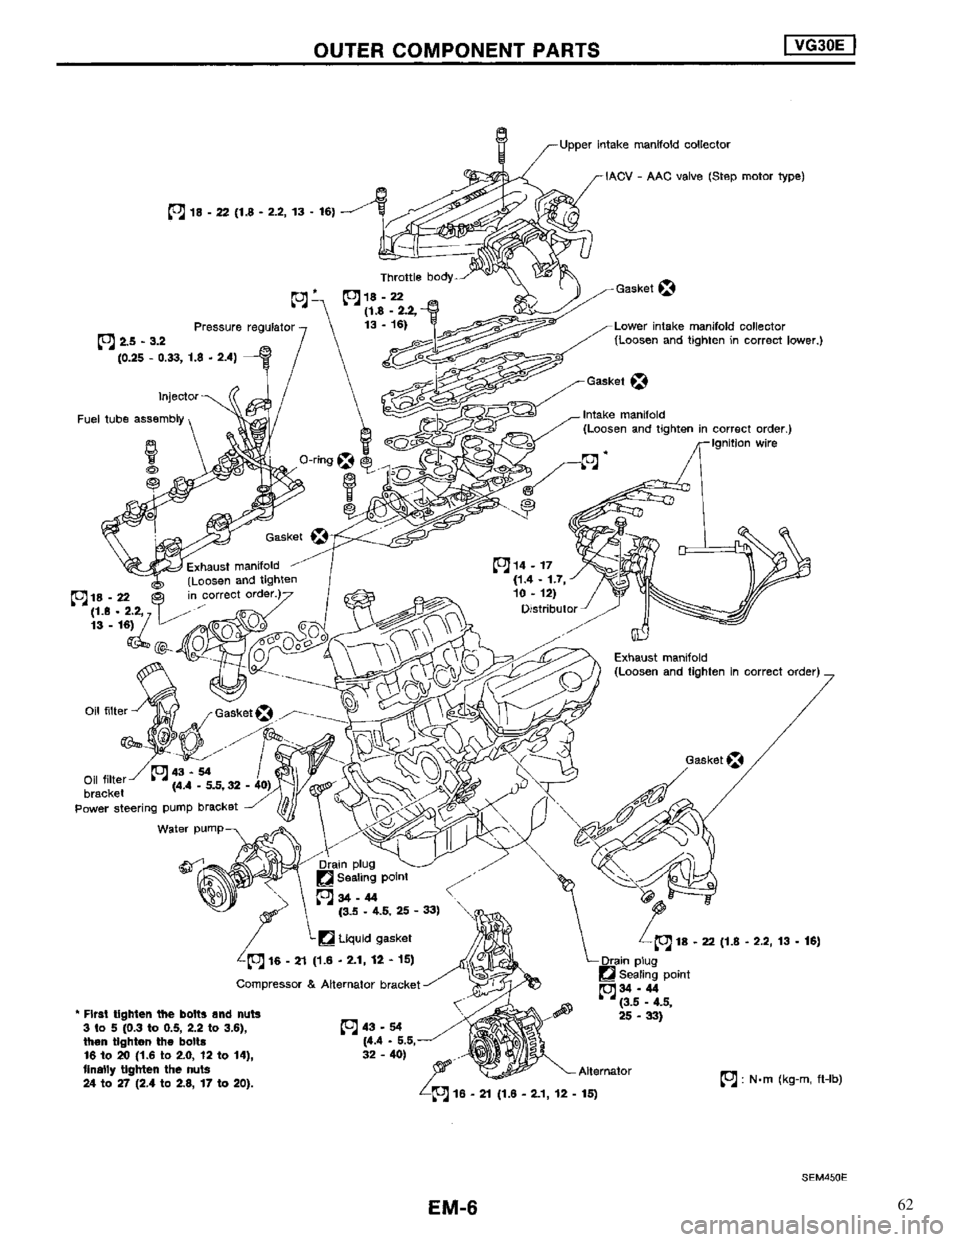 Nissan Maxima 1994 A32 4 G Engine Mechanical Workshop Manual 103 Pages